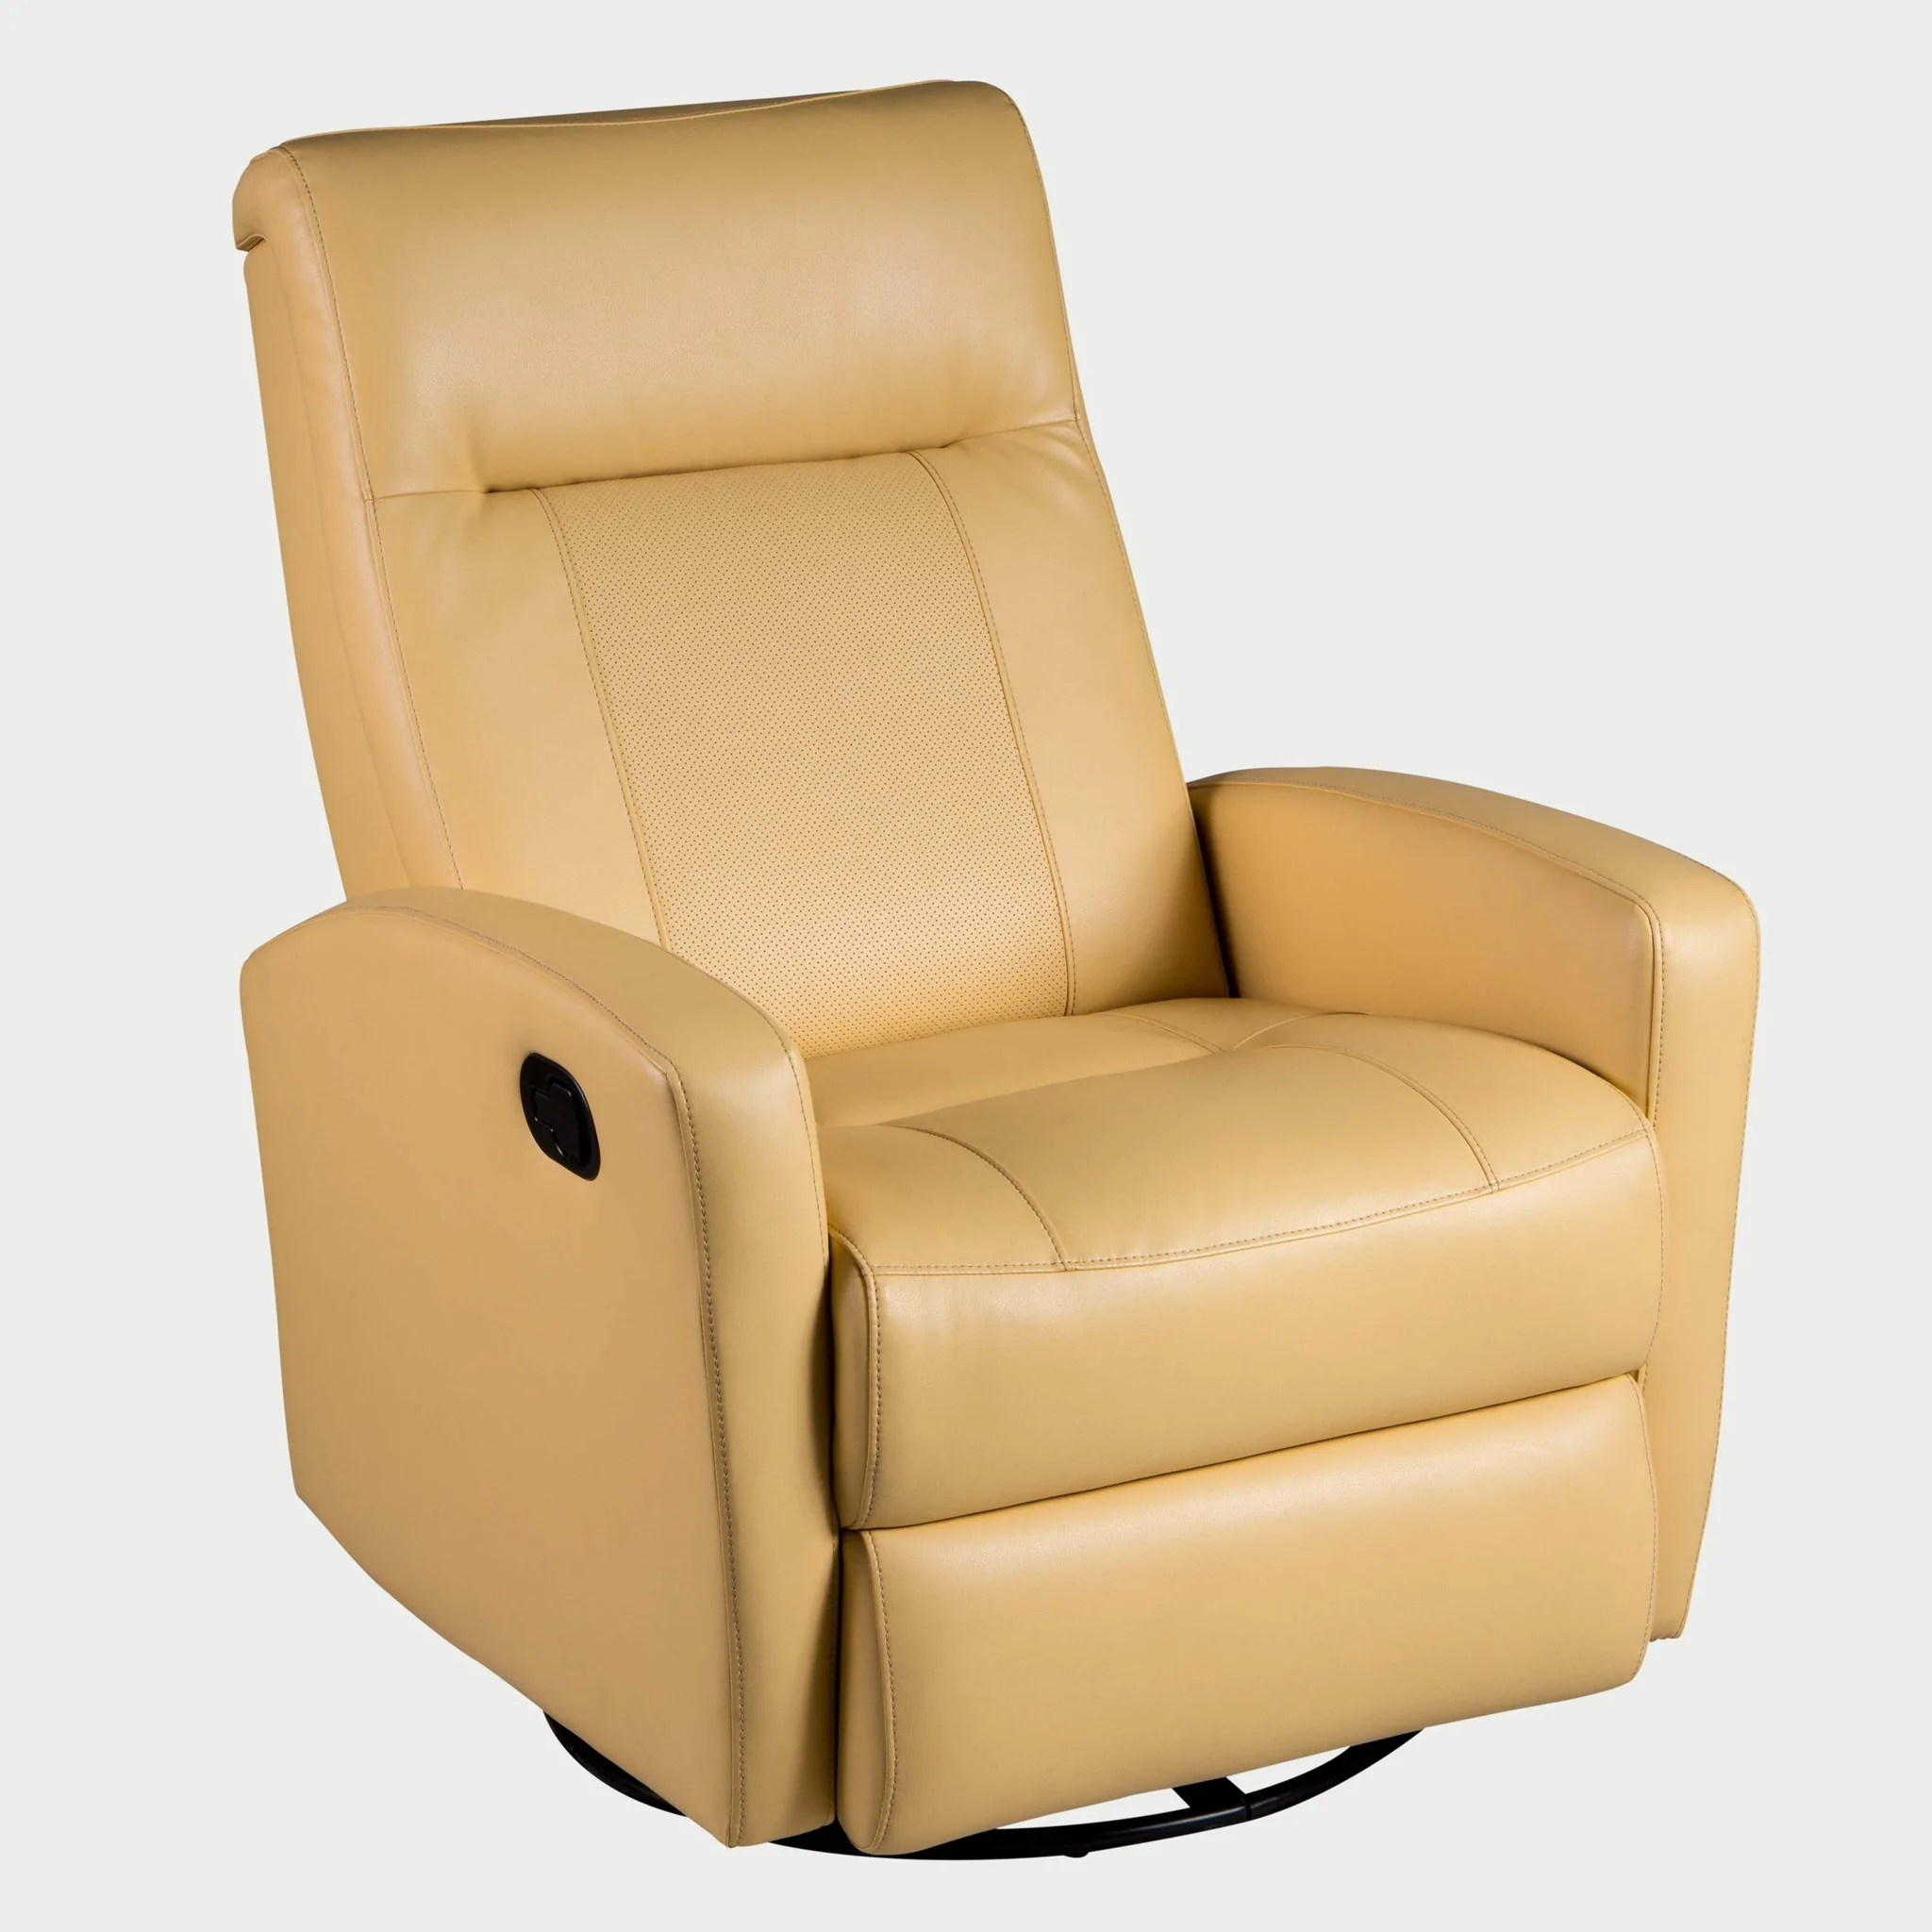 swivel chair near me cracker barrel rocking chairs coupon stefan glider recliner diego yellow  direct